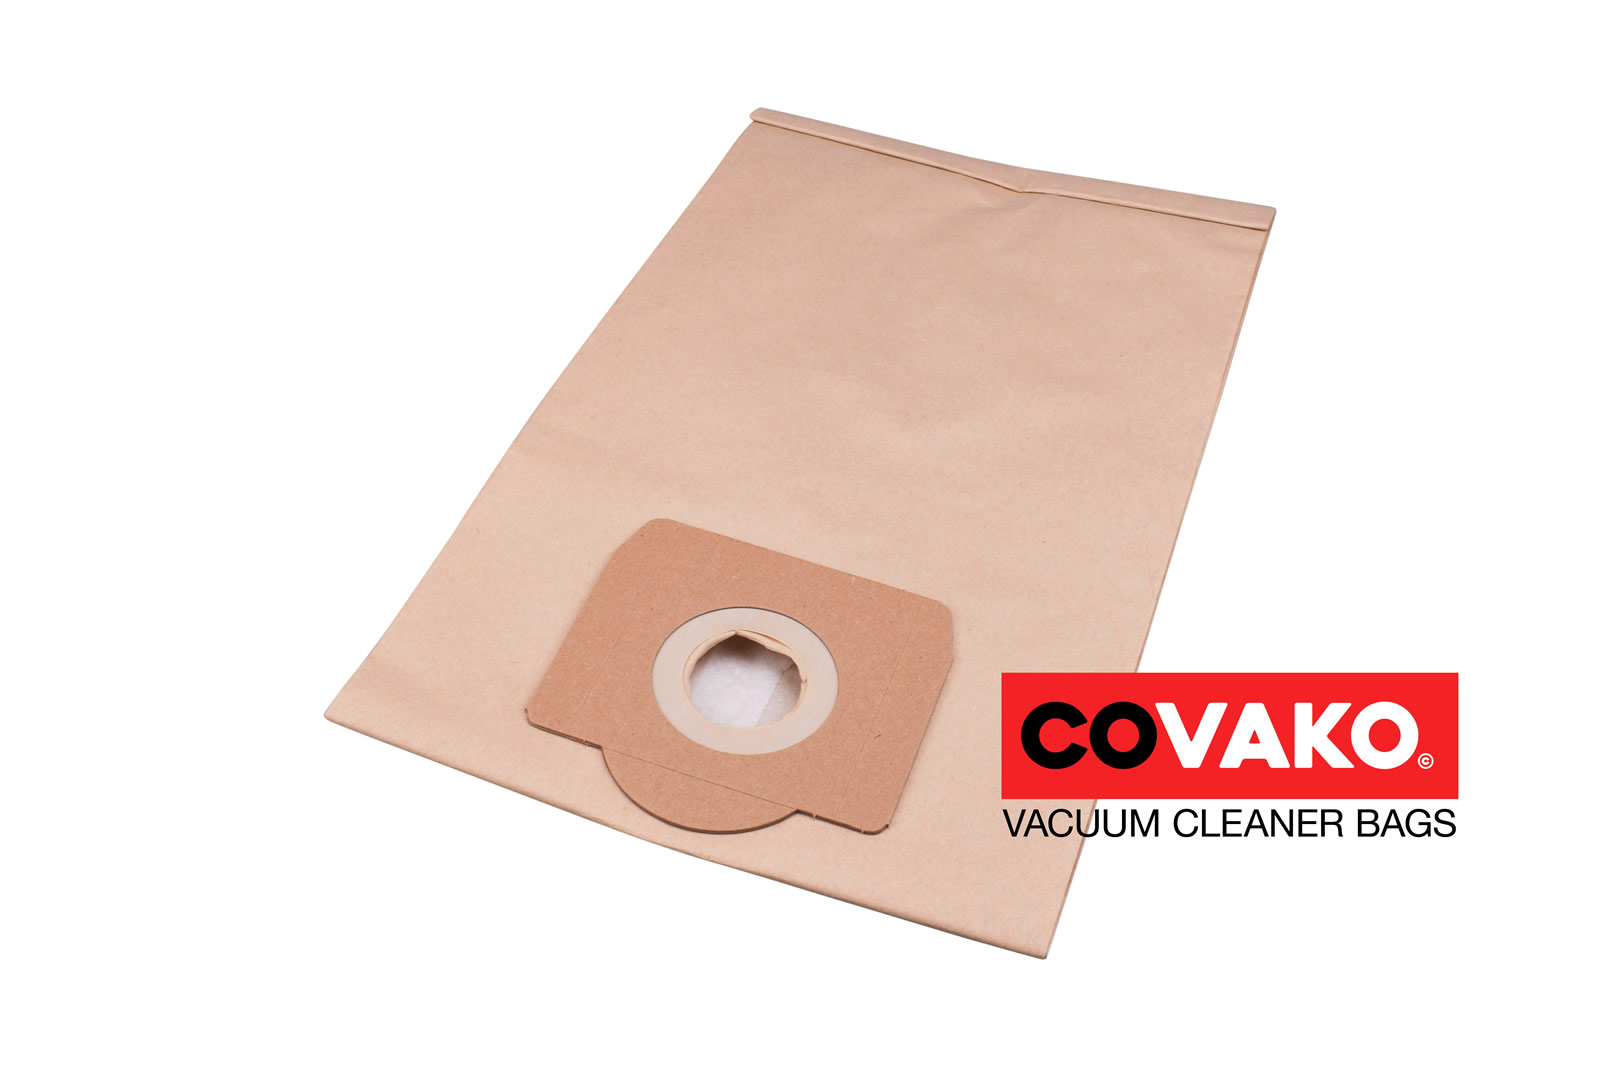 Gansow YS 1300/16 / Paper - Gansow vacuum cleaner bags